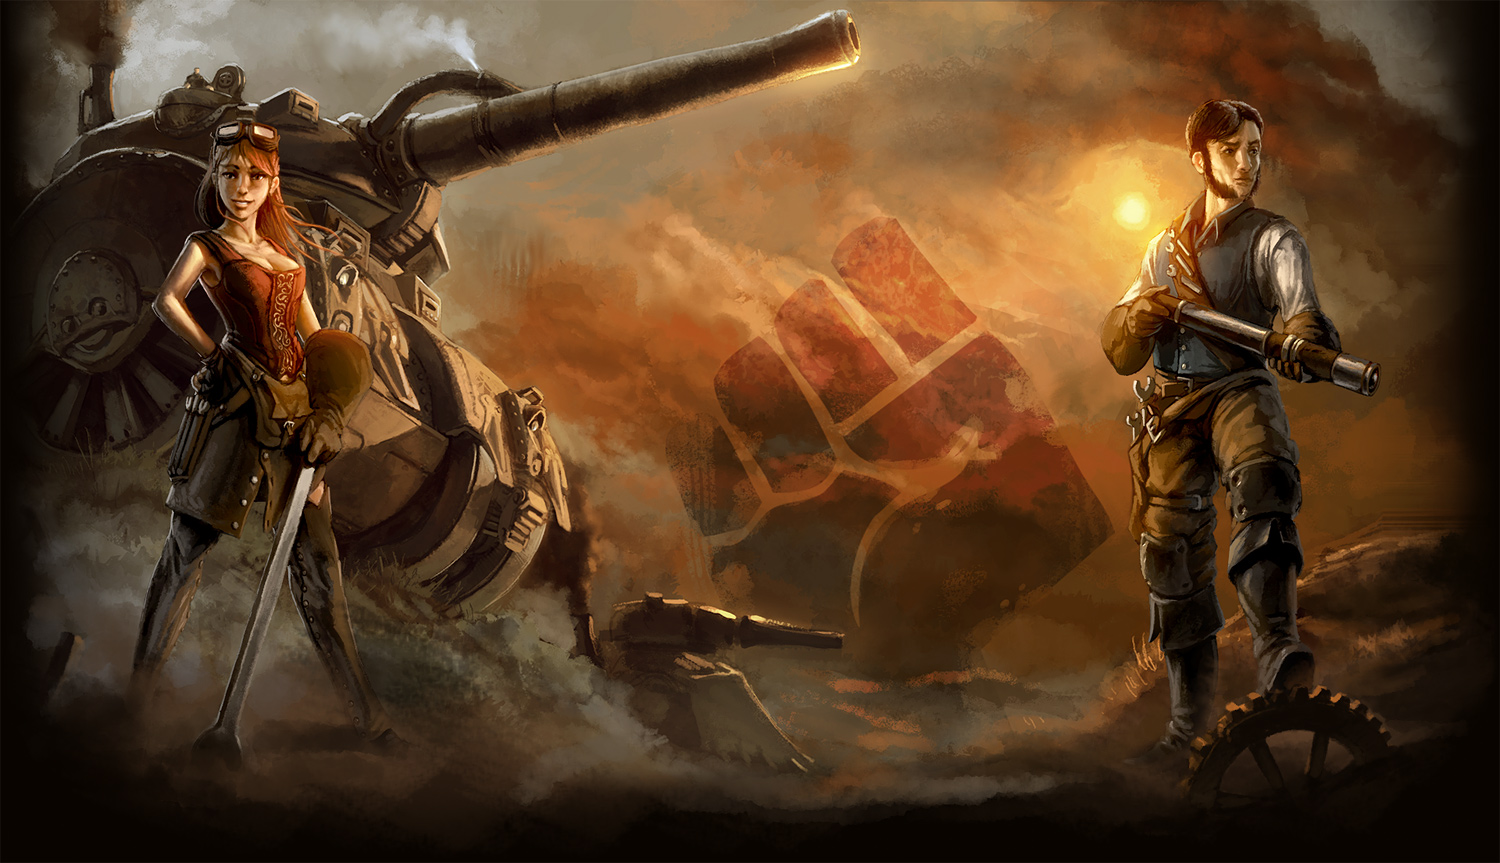 Steel Legions Wallpaper